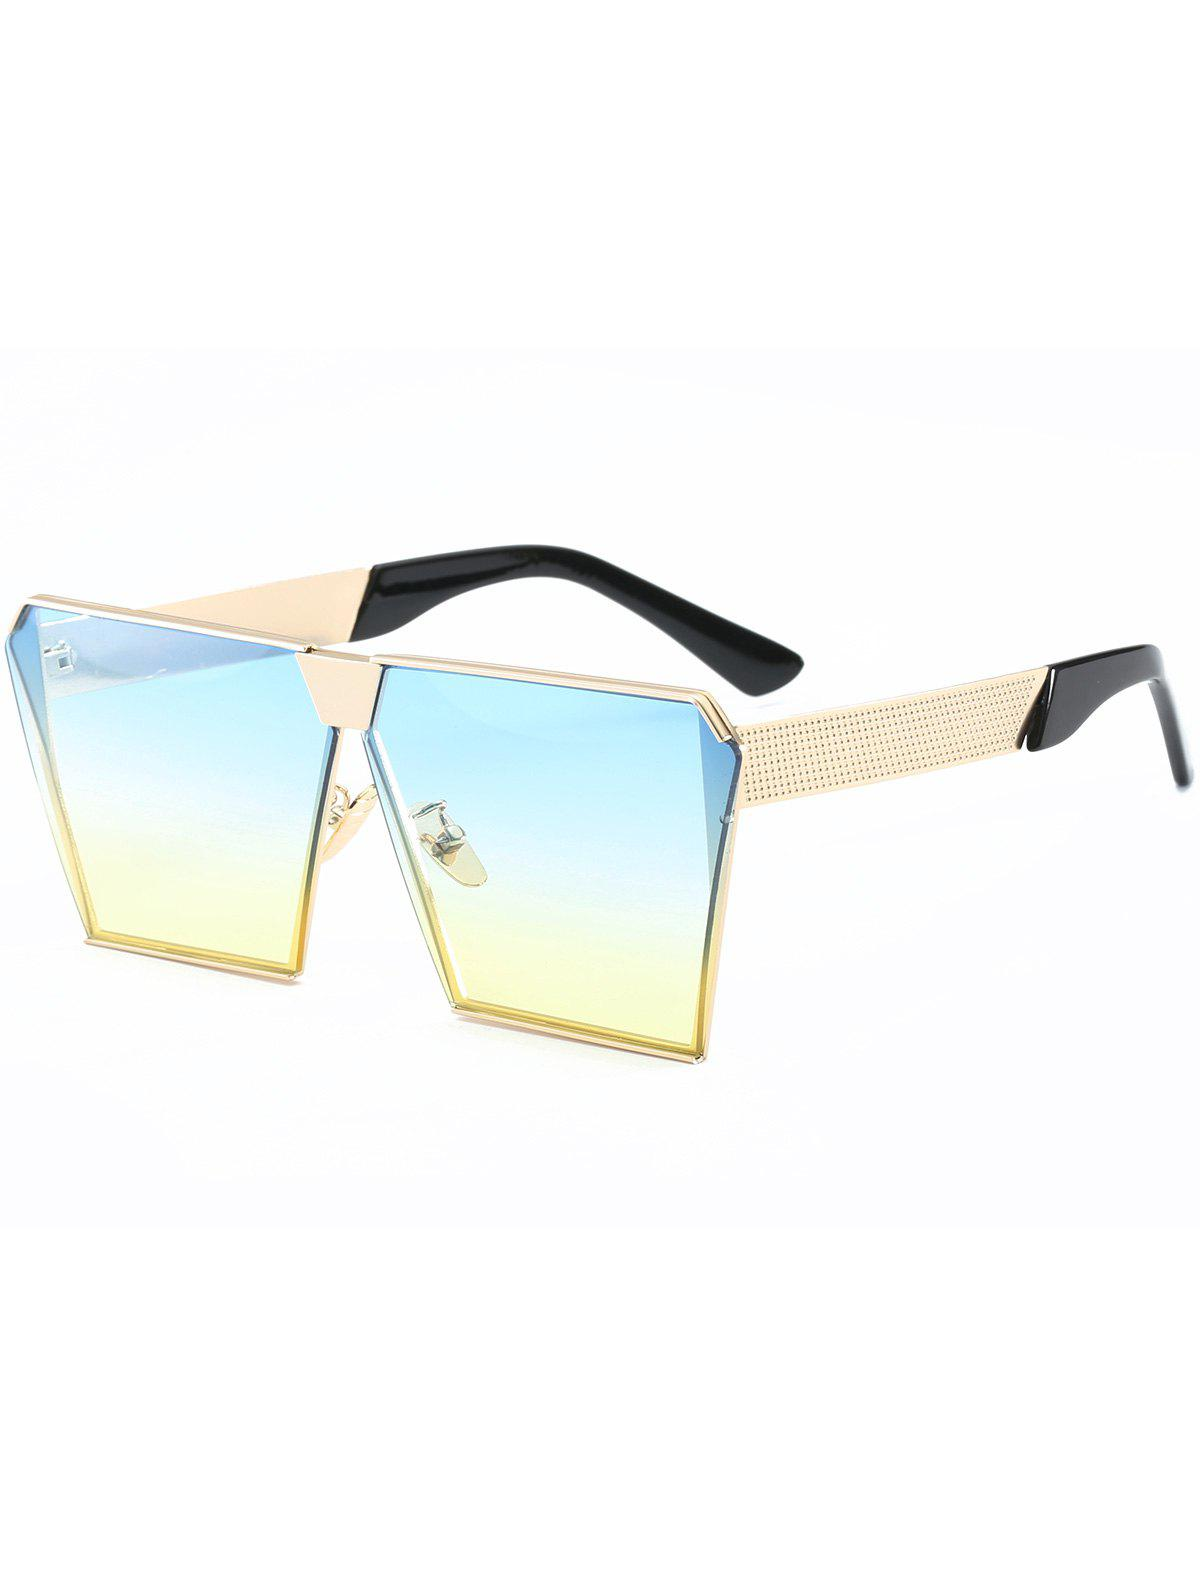 d9eb4105d0f3 28% OFF] Street Snap Retro Square Frame Sunglasses | Rosegal